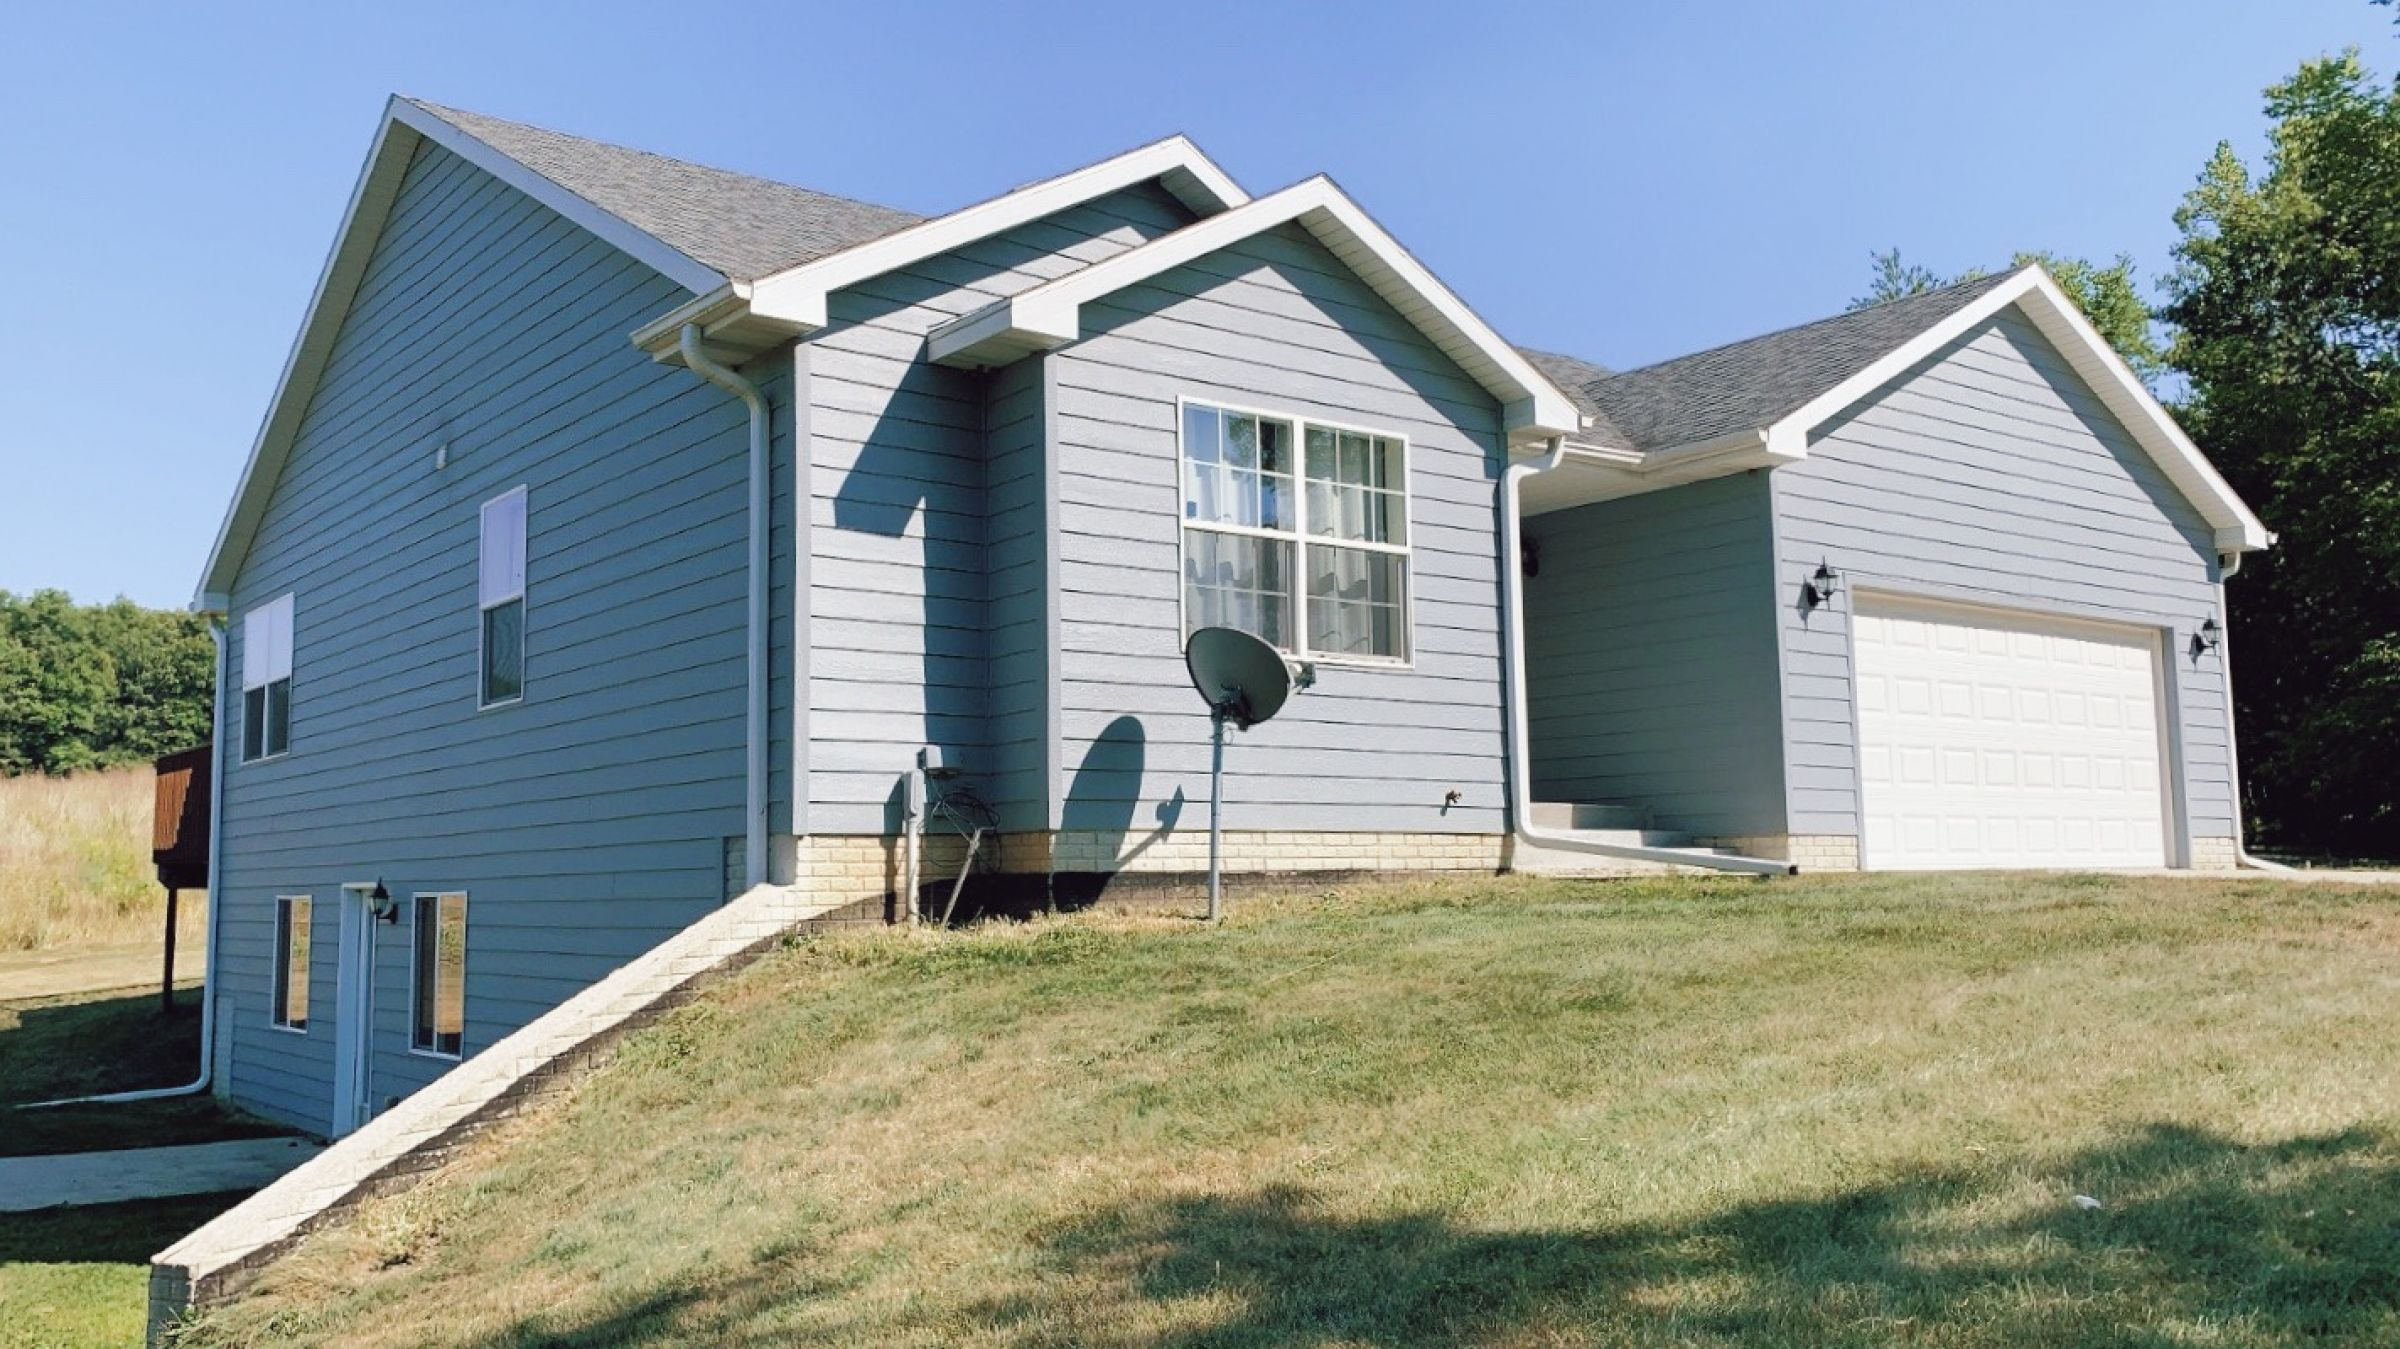 residential-madison-county-iowa-5-acres-listing-number-15408-3-2021-03-11-160703.jpg